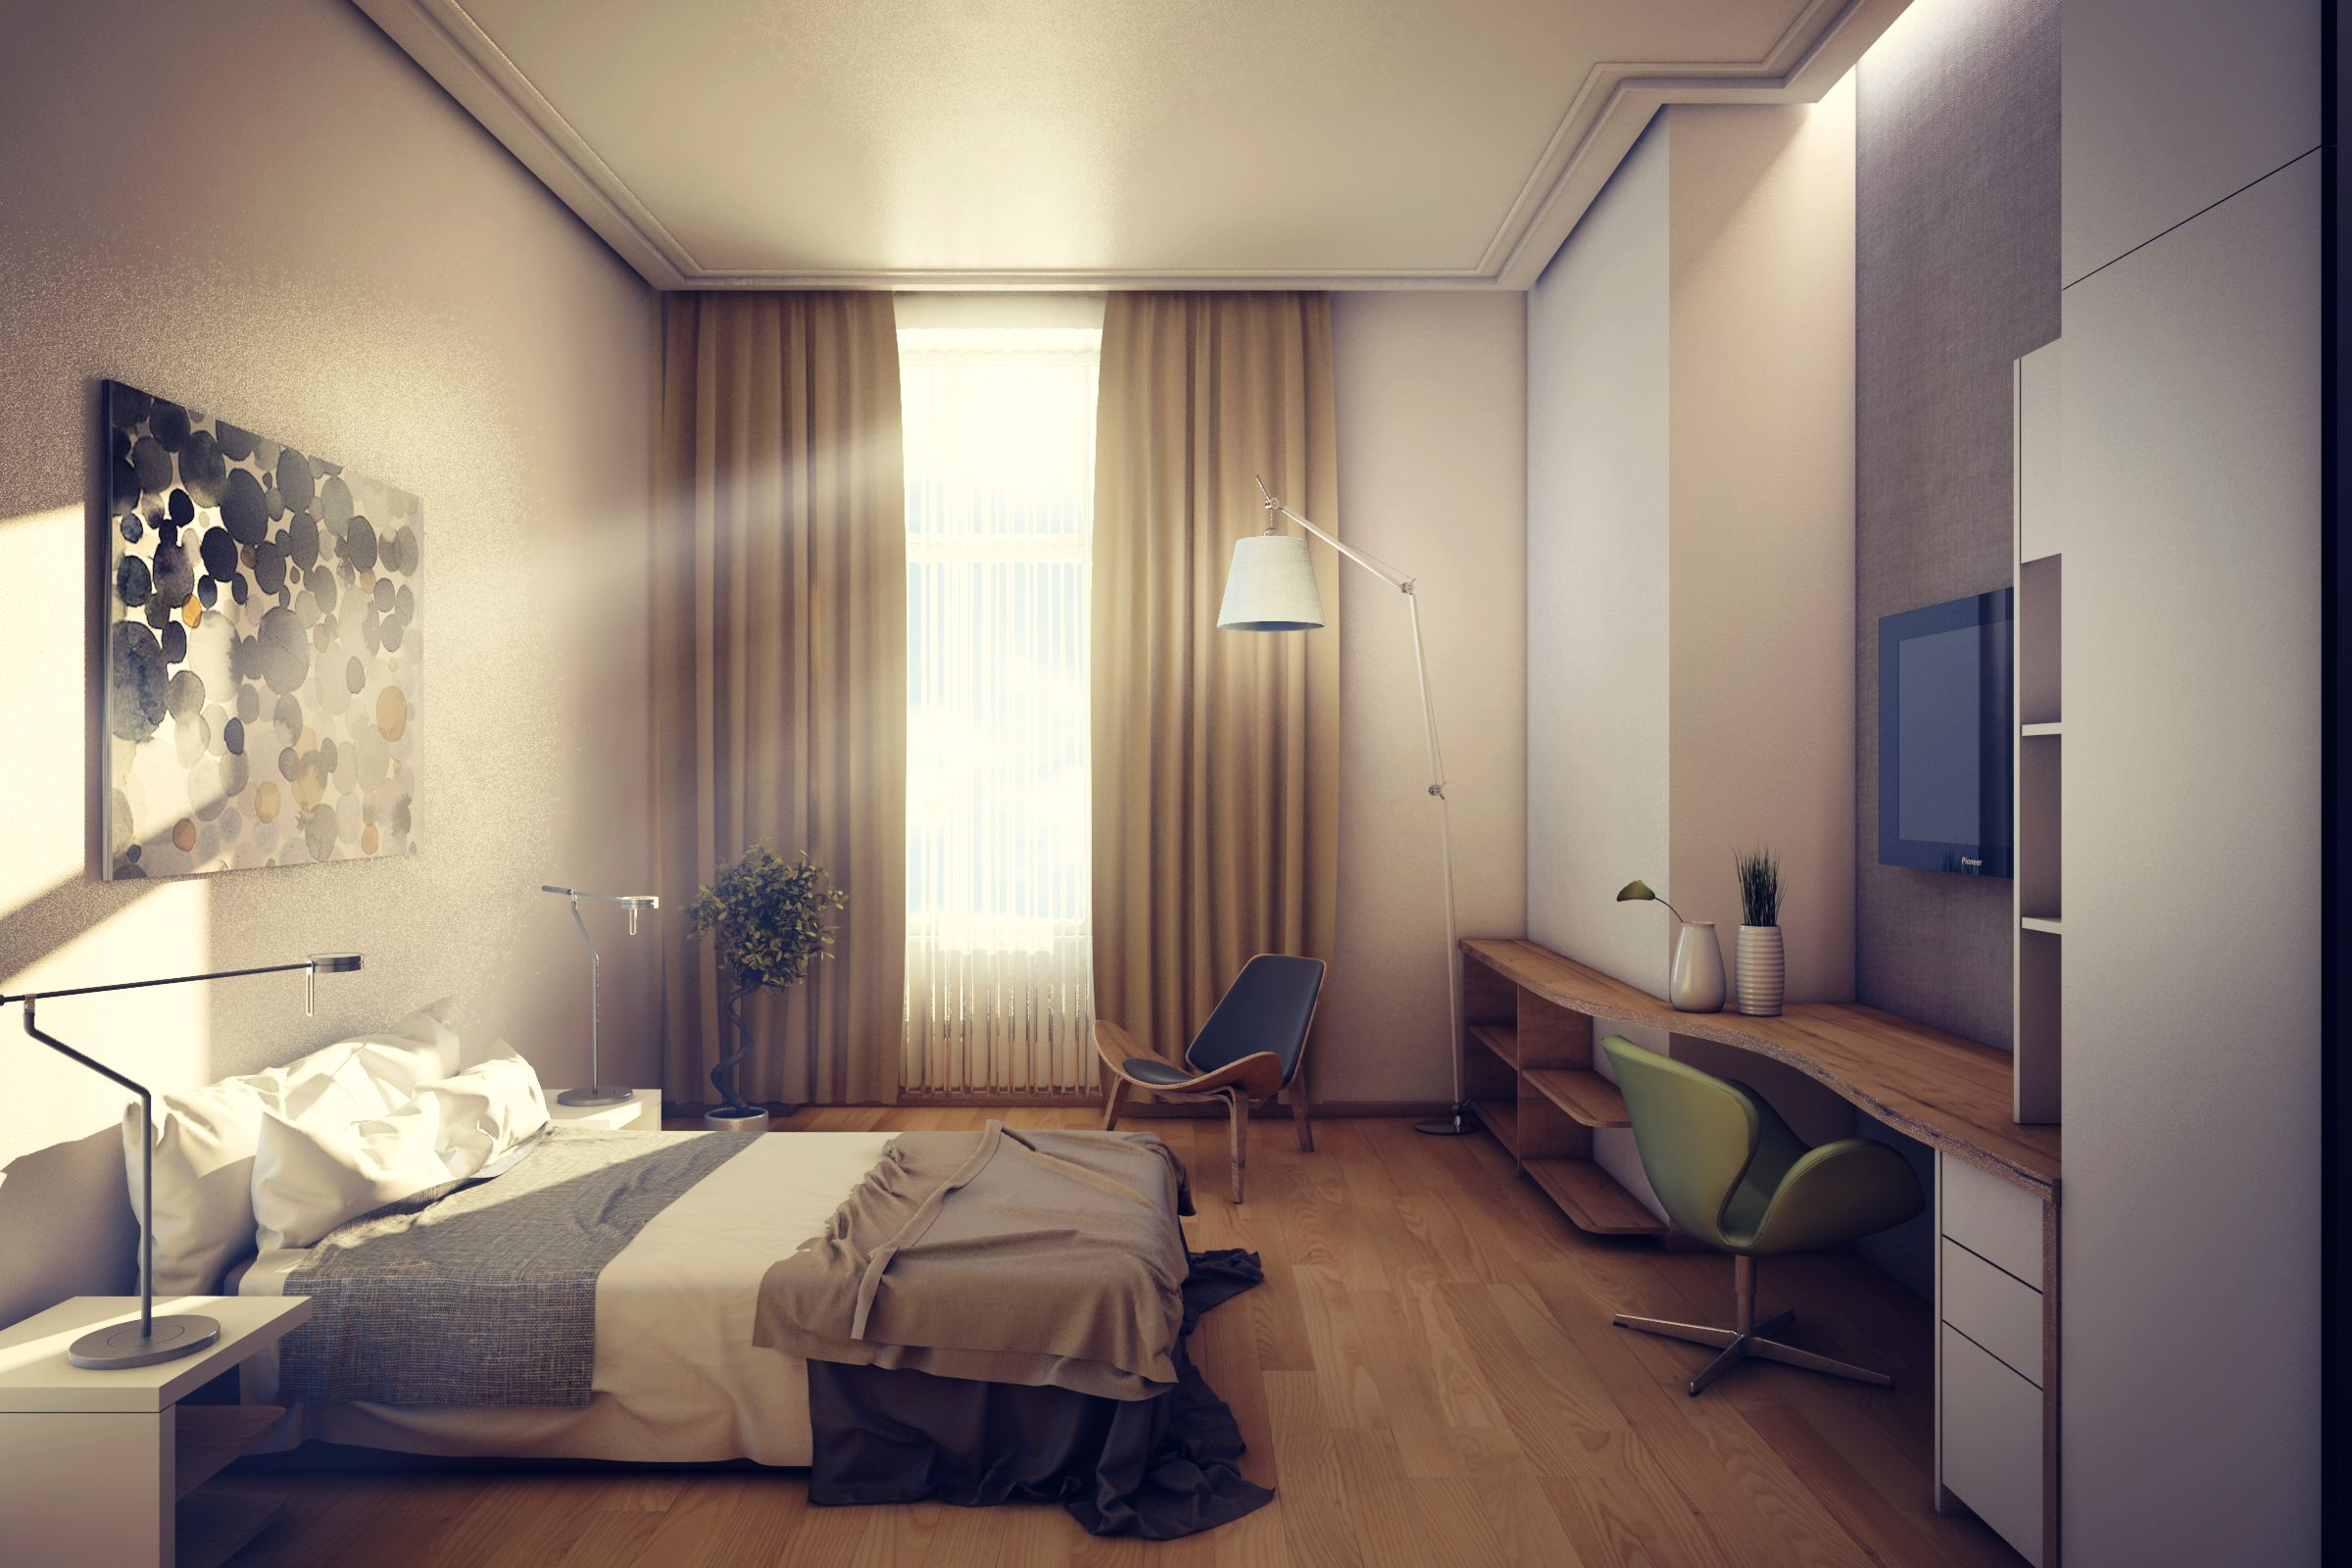 Hotel room interior design 3d modelling rendering and for Interior design room hotel